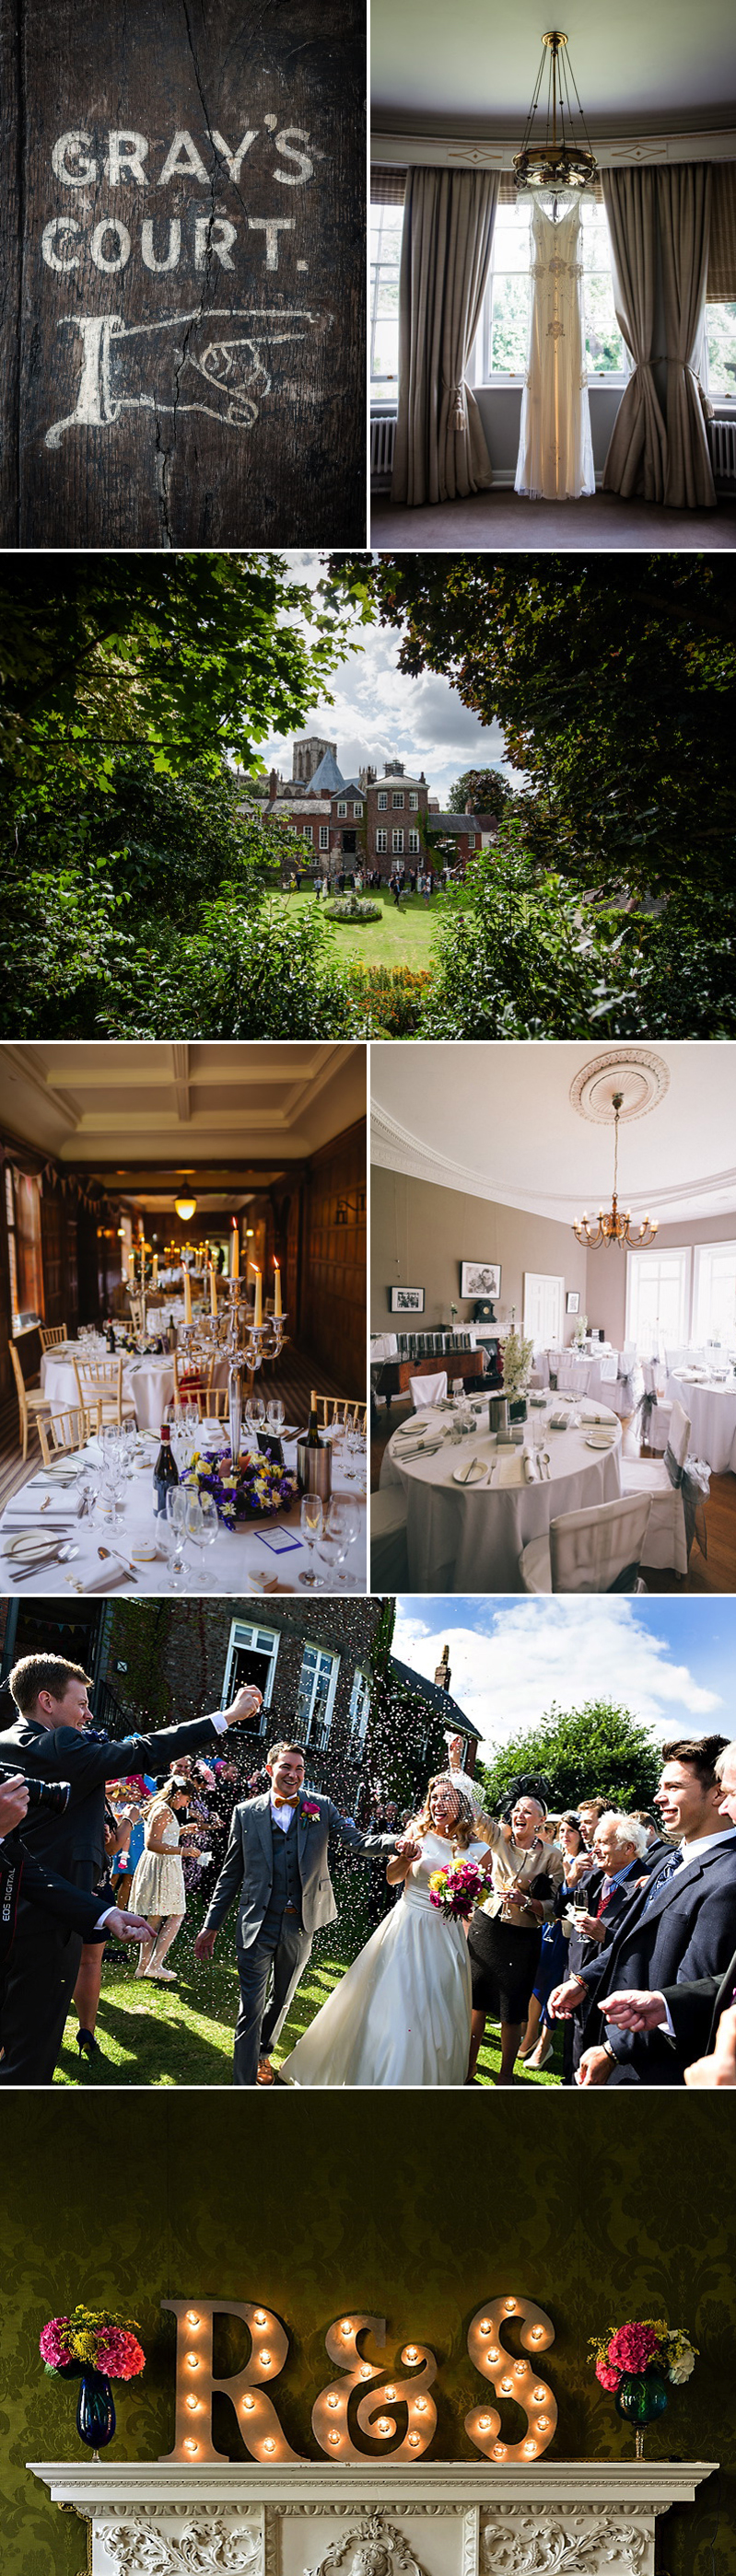 Coco Wedding Venues - Grays Court York.